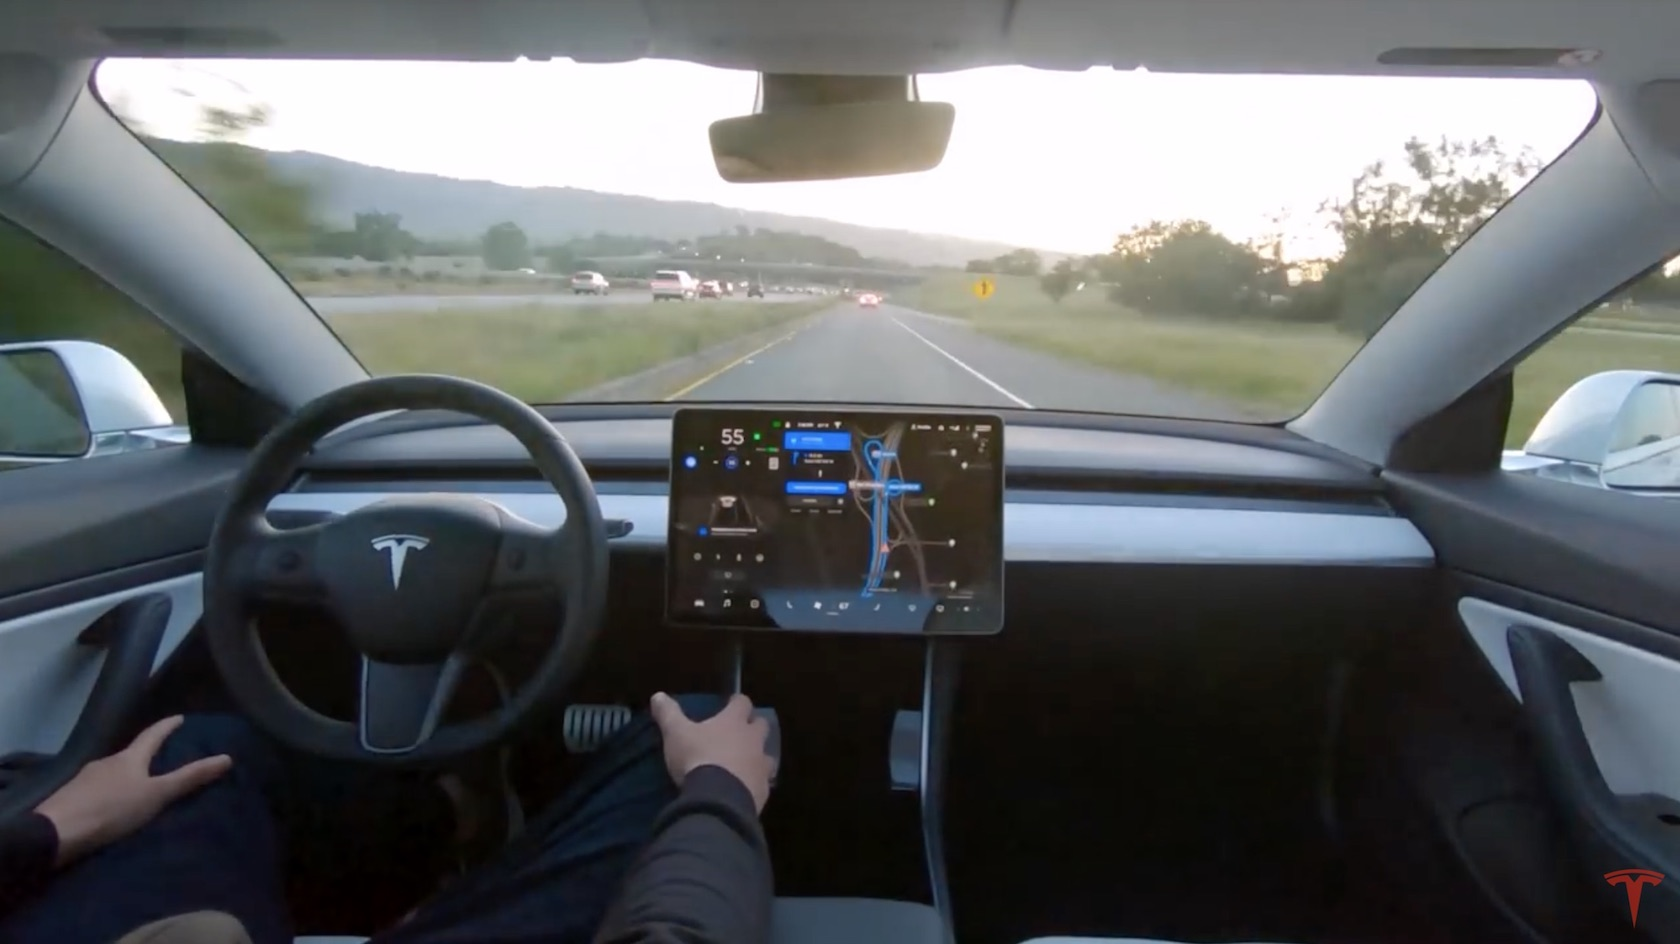 Tesla S Latest Full Self Driving Car Went For A Drive